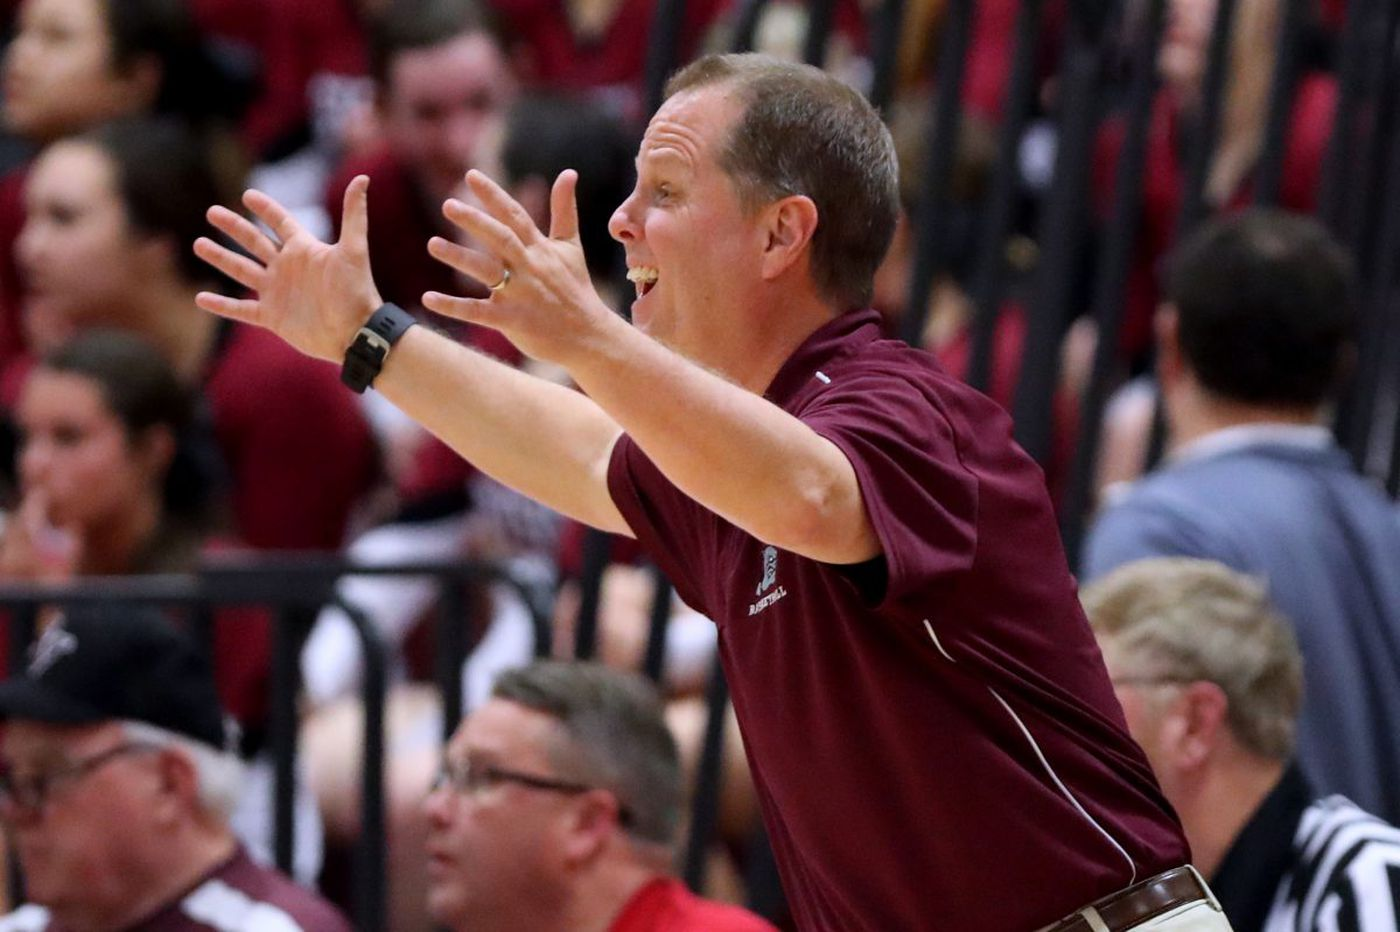 Dinner will honor four high school basketball coaching greats